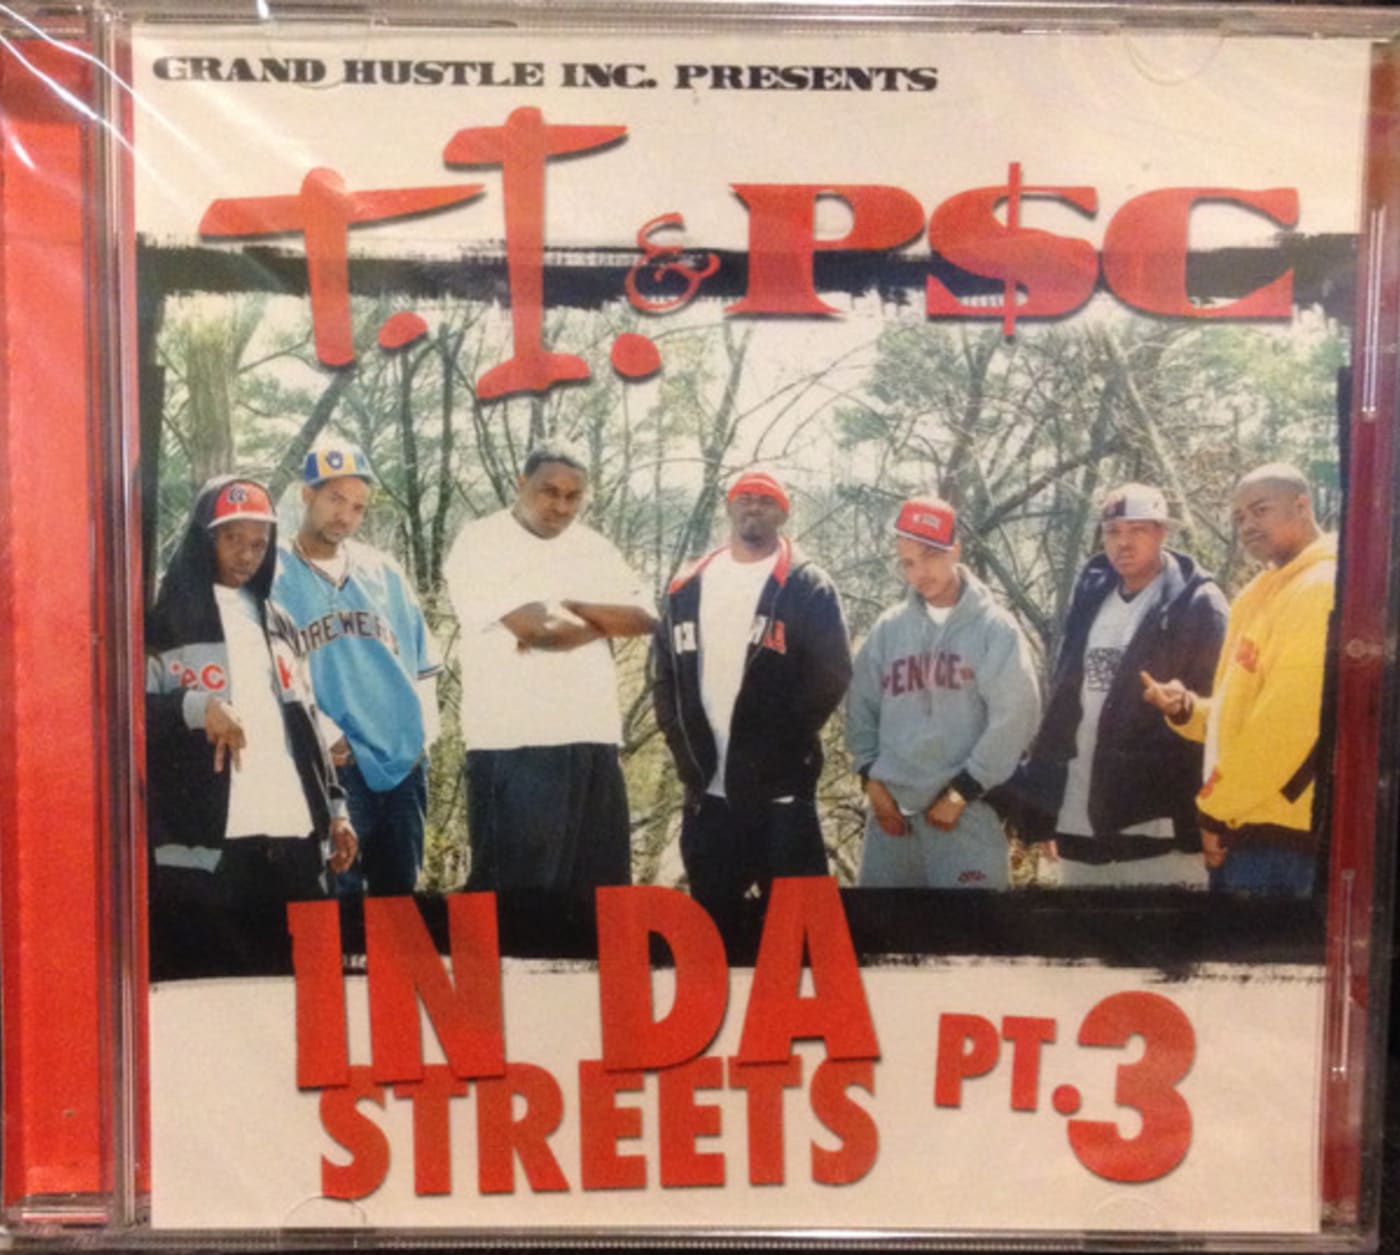 rapper mix tape ti in da streets